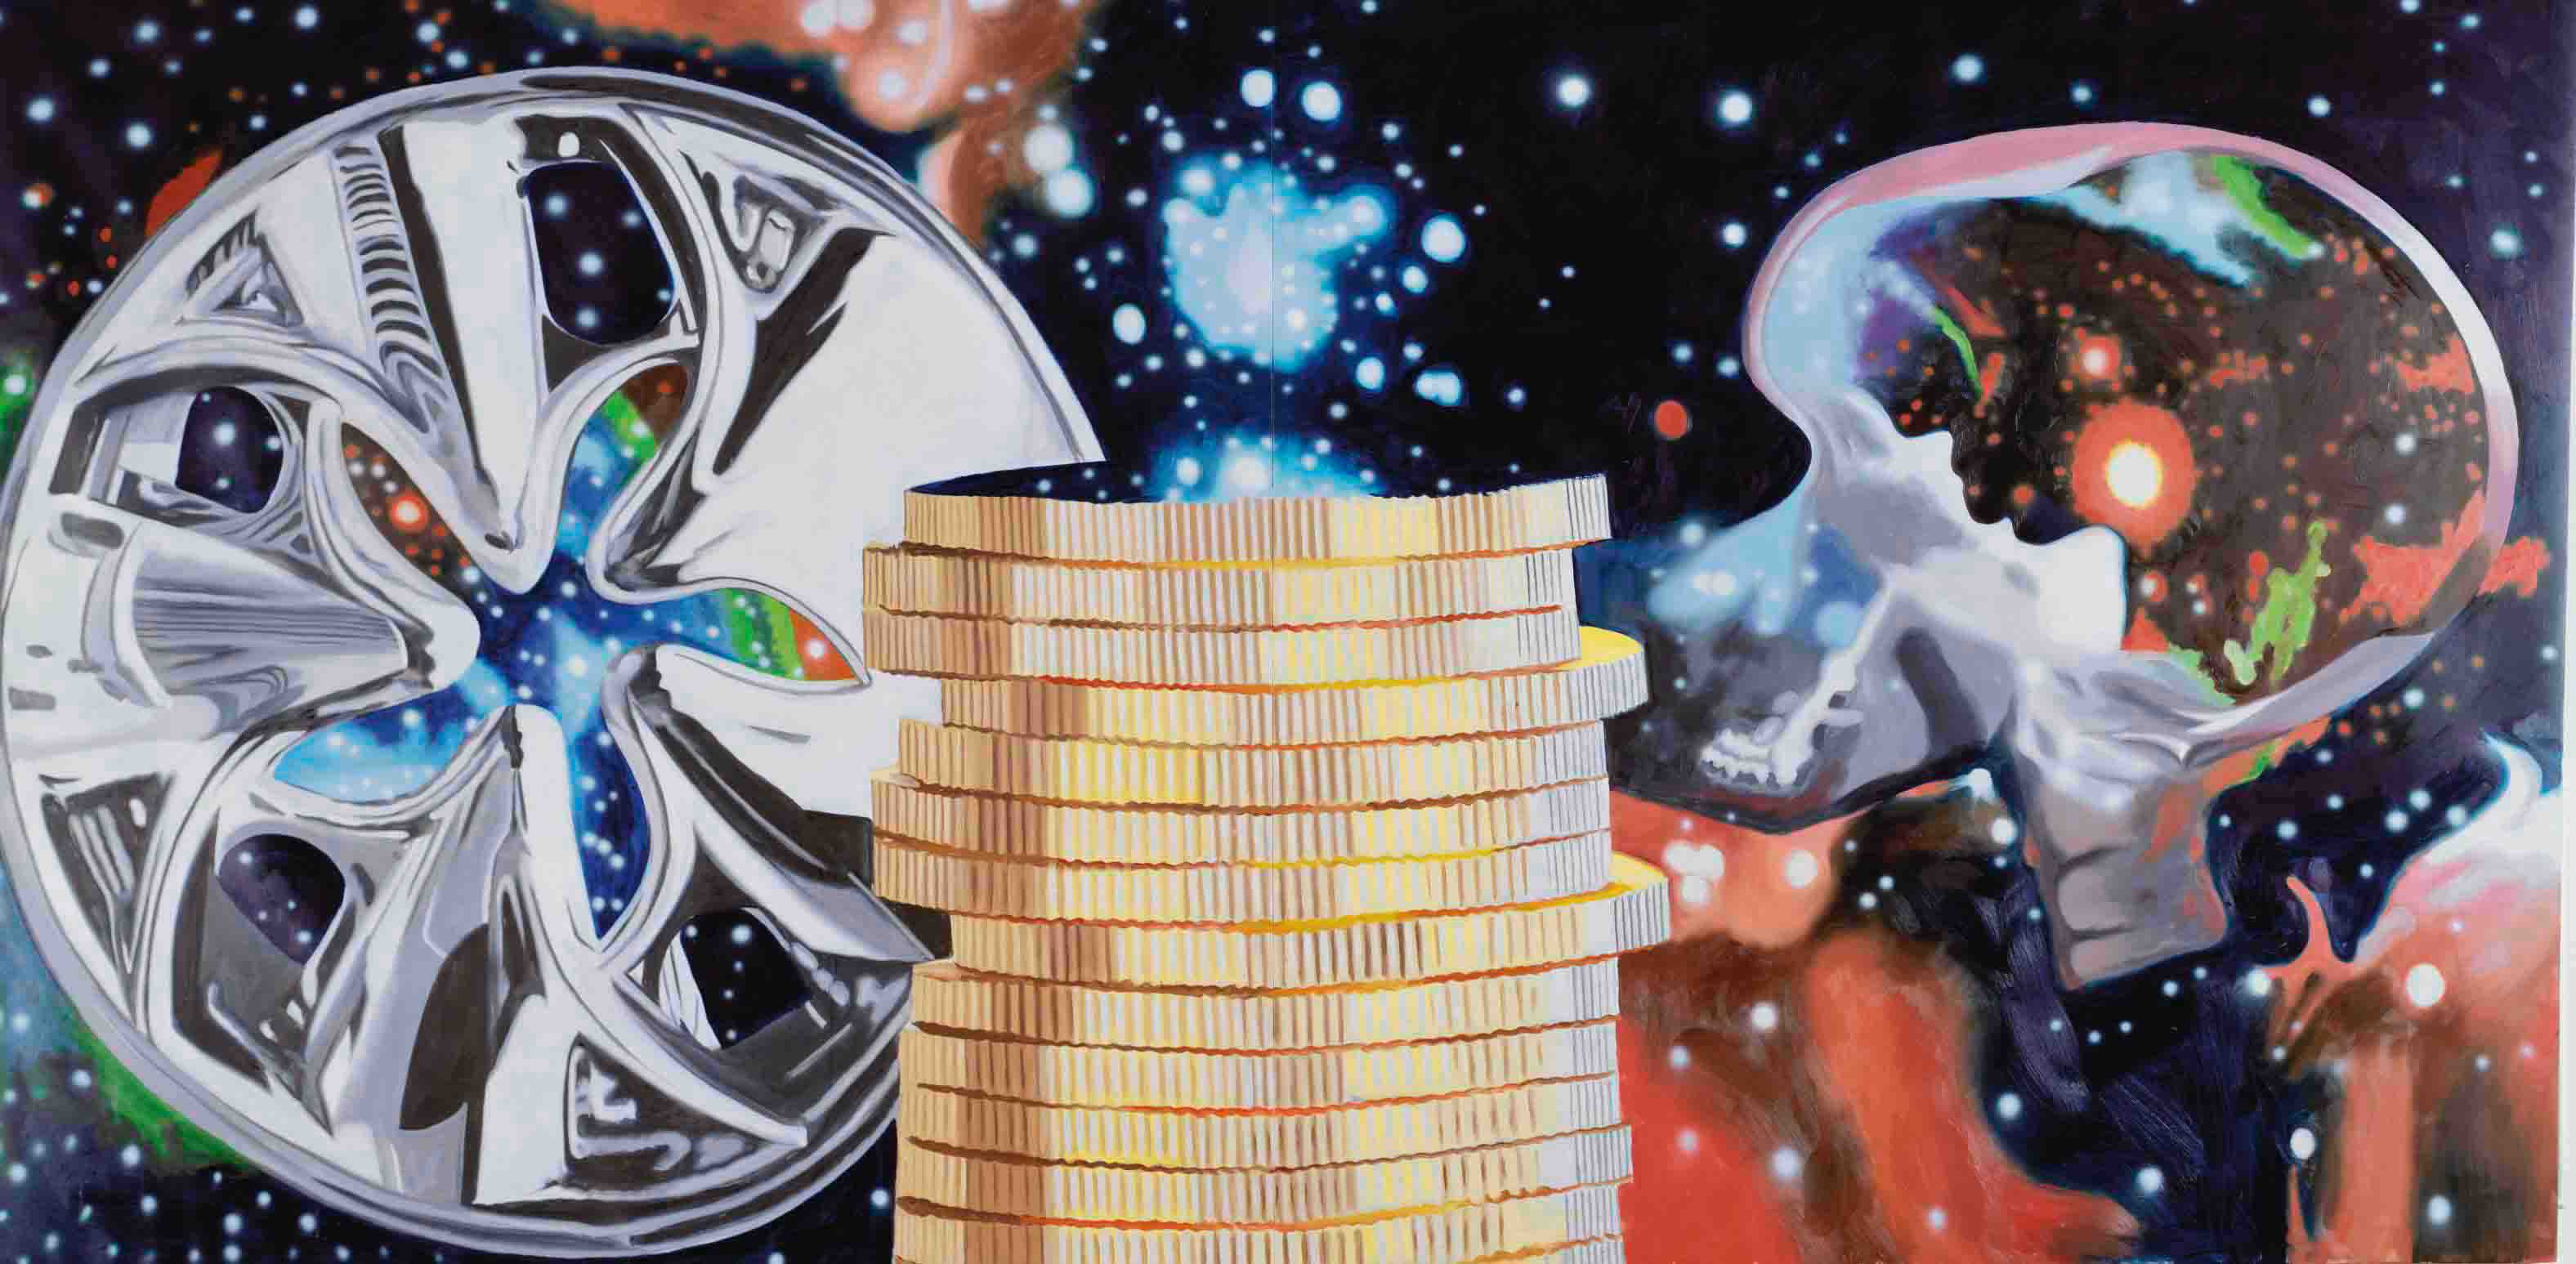 The Richest Person Gazing at the Universe Through a Hubcap